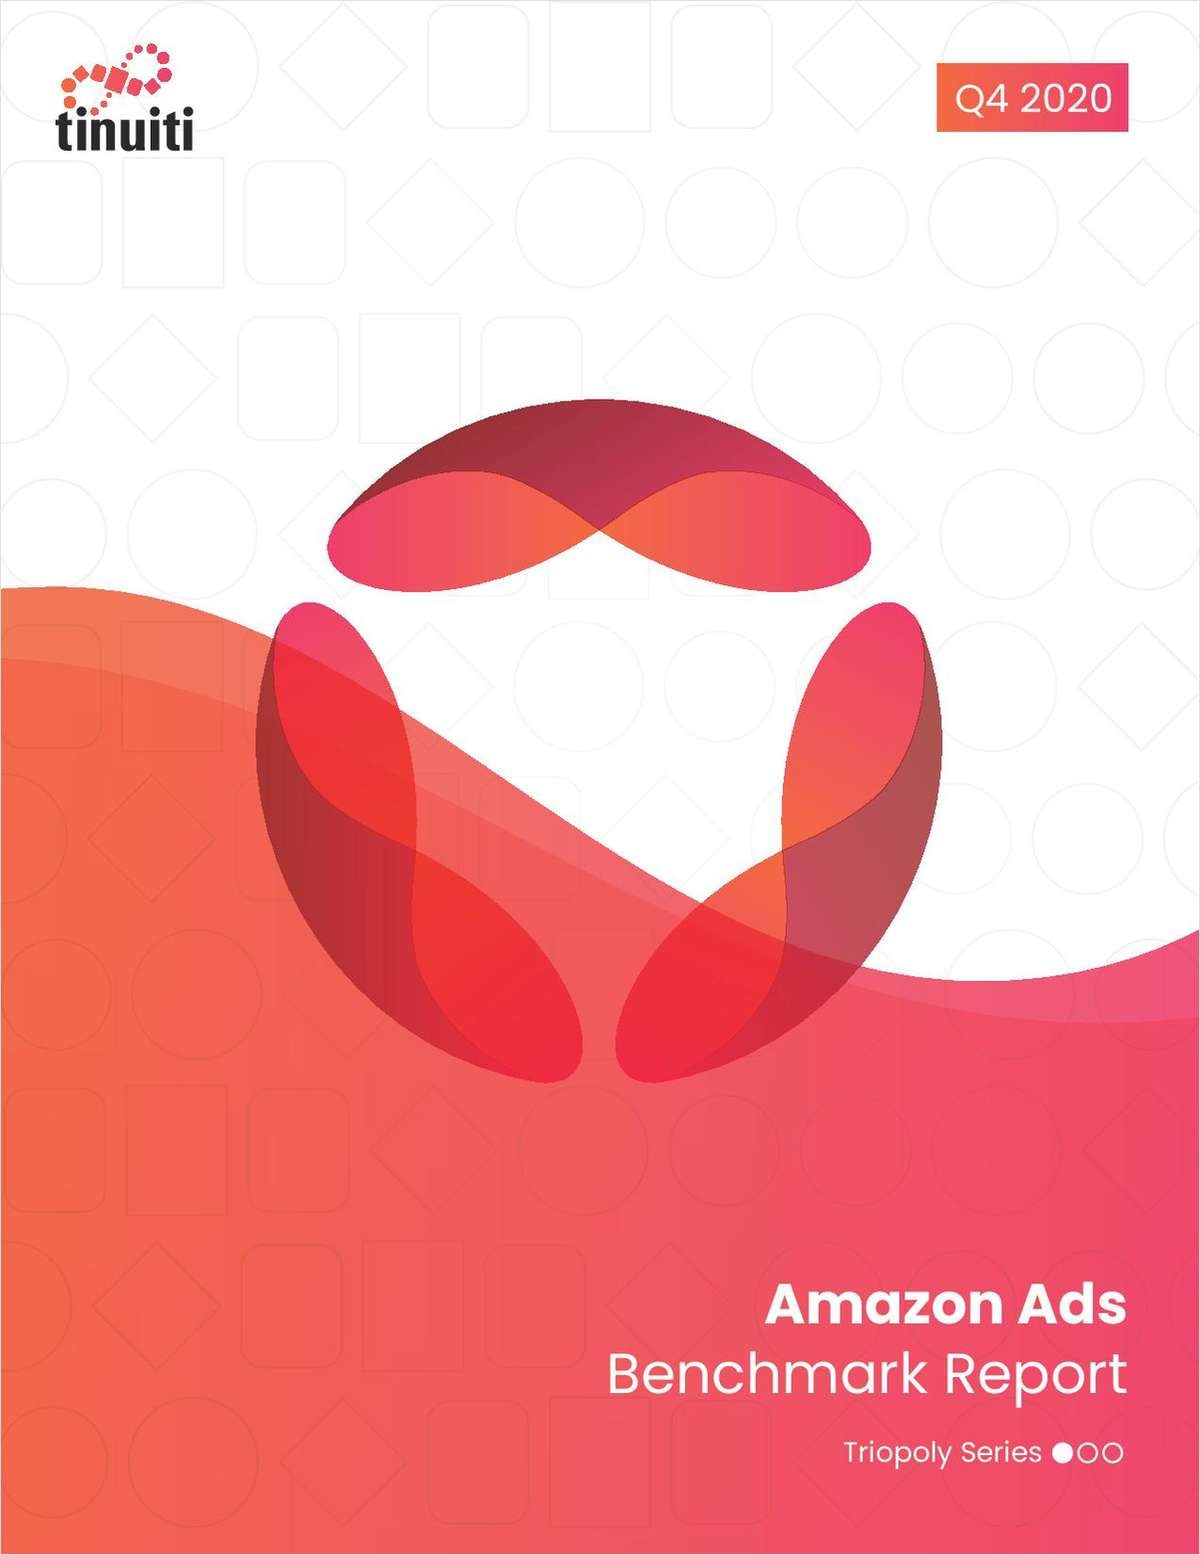 Amazon Ads Benchmark Report: Q4 2020